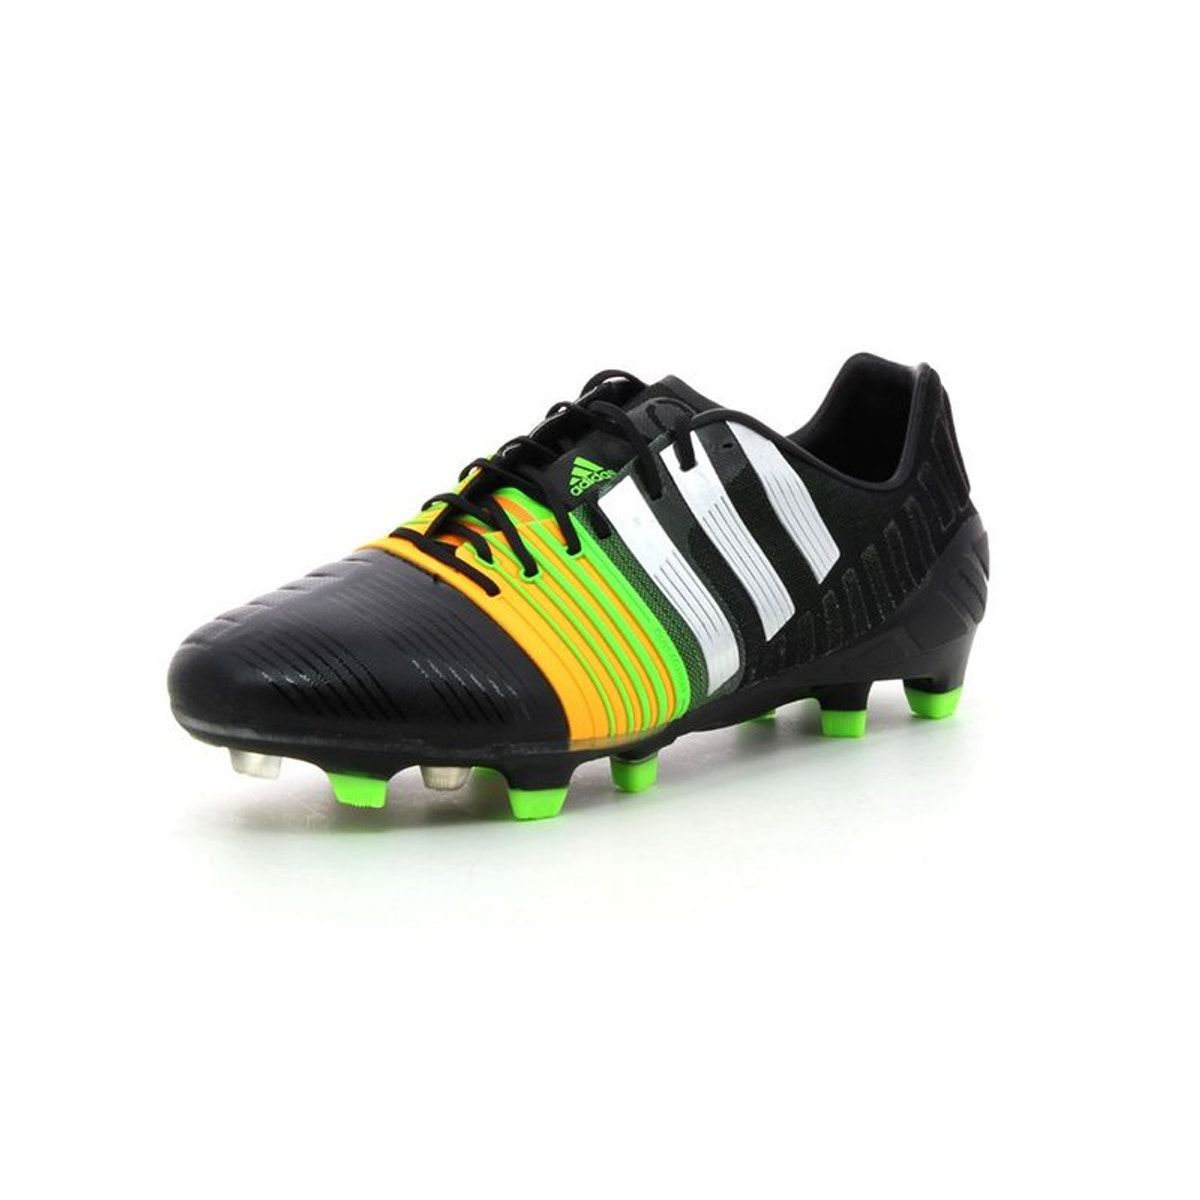 3037ab081 Adidas Performance Nitrocharge 1.0 Fg Chaussures De Football Homme Noir -  Taille : 42 2/